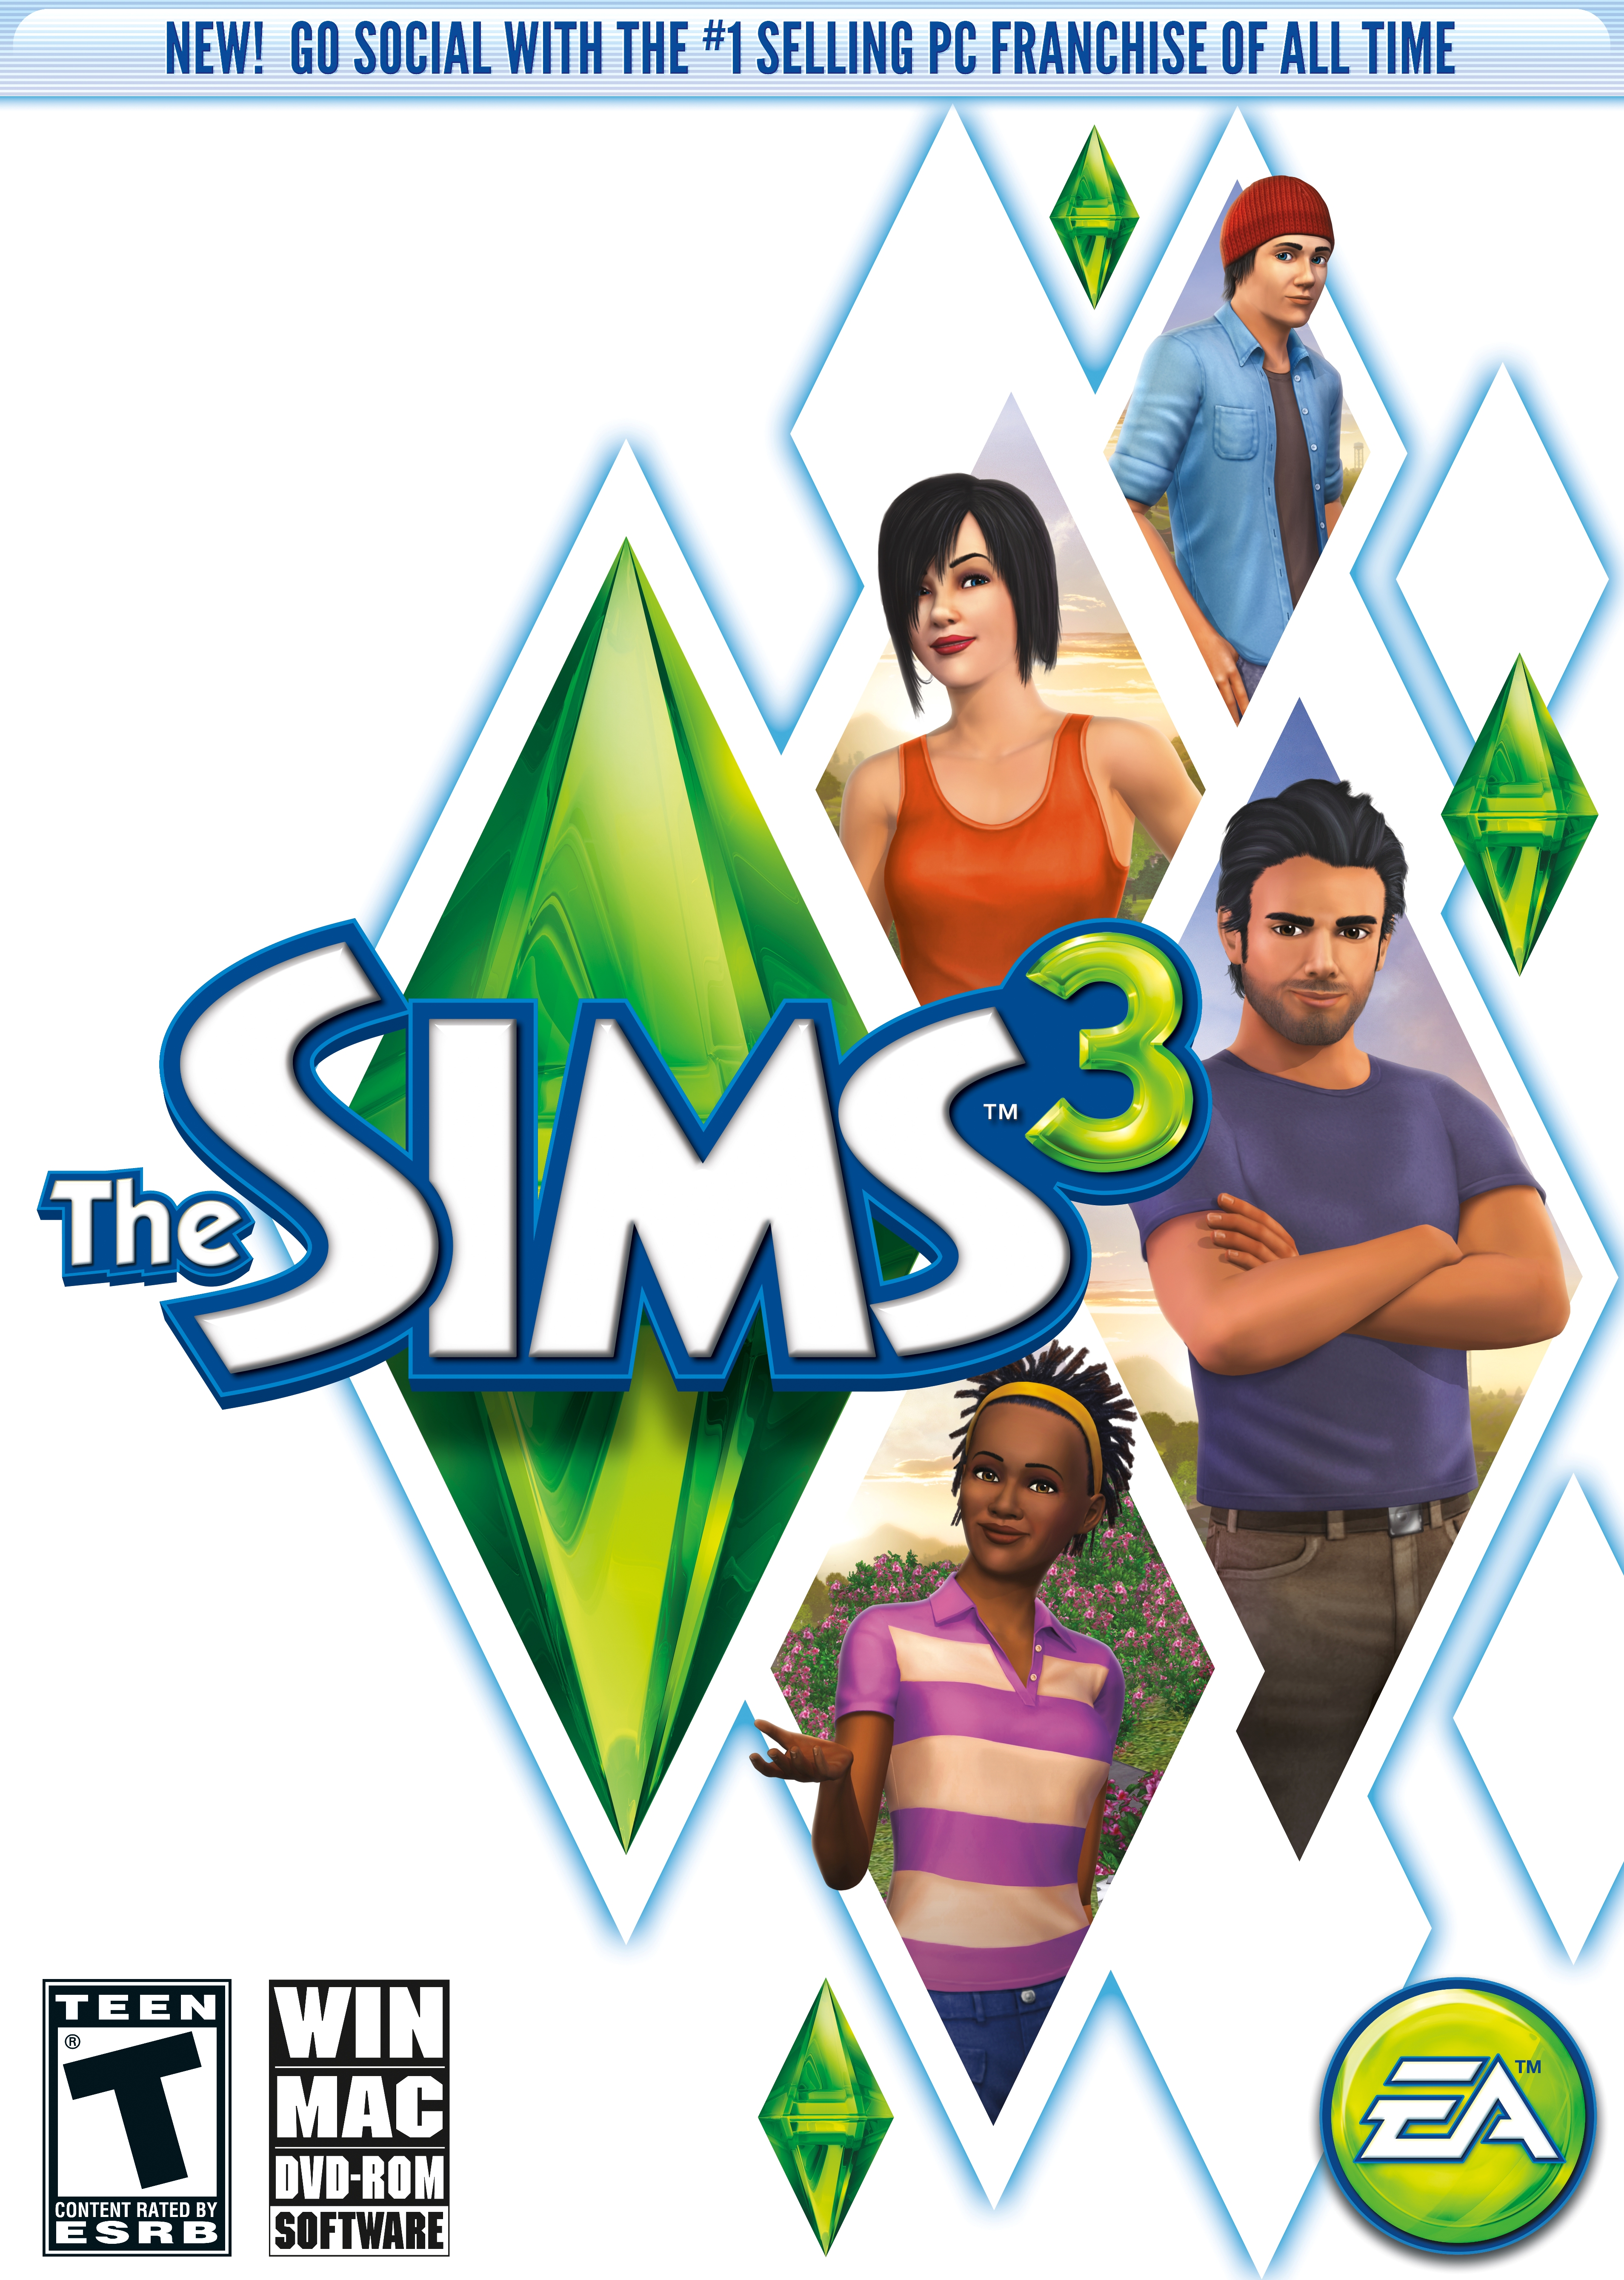 Sims 3 wiki dating